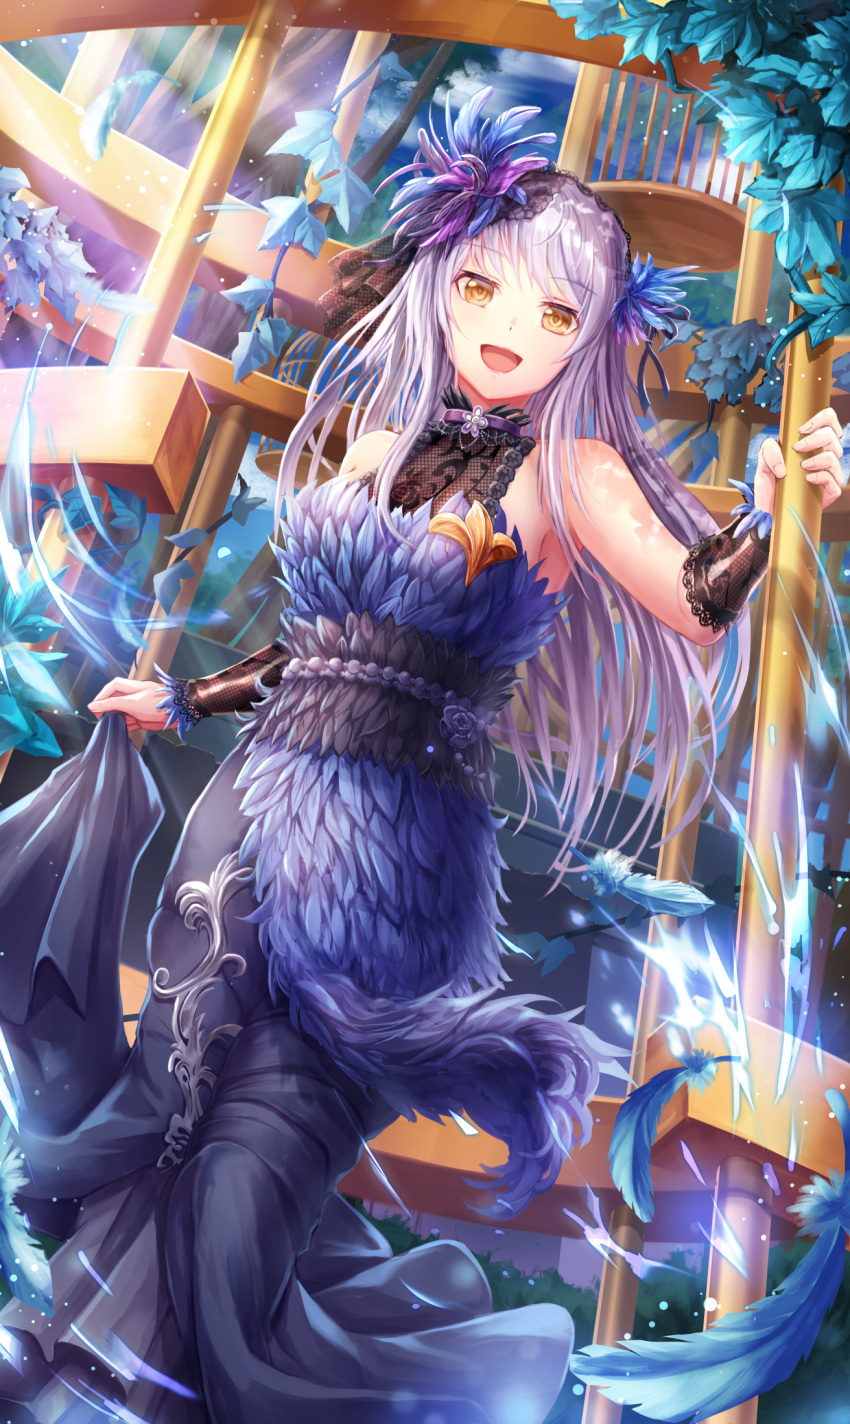 1girl :d armpits bang_dream! bangs bare_shoulders blue_dress blue_feathers blue_sky branch breasts clouds collar commentary_request dappled_sunlight dress eyebrows_visible_through_hair falling_feathers feathers fingernails hair_feathers halterneck highres holding lace_trim lavender_hair leaf light_particles light_rays lipstick long_dress long_hair looking_at_viewer lunacle makeup medium_breasts minato_yukina open_mouth pink_lipstick purple_collar purple_feathers sash skirt_hold sky sleeveless sleeveless_dress smile solo standing sunlight yellow_eyes